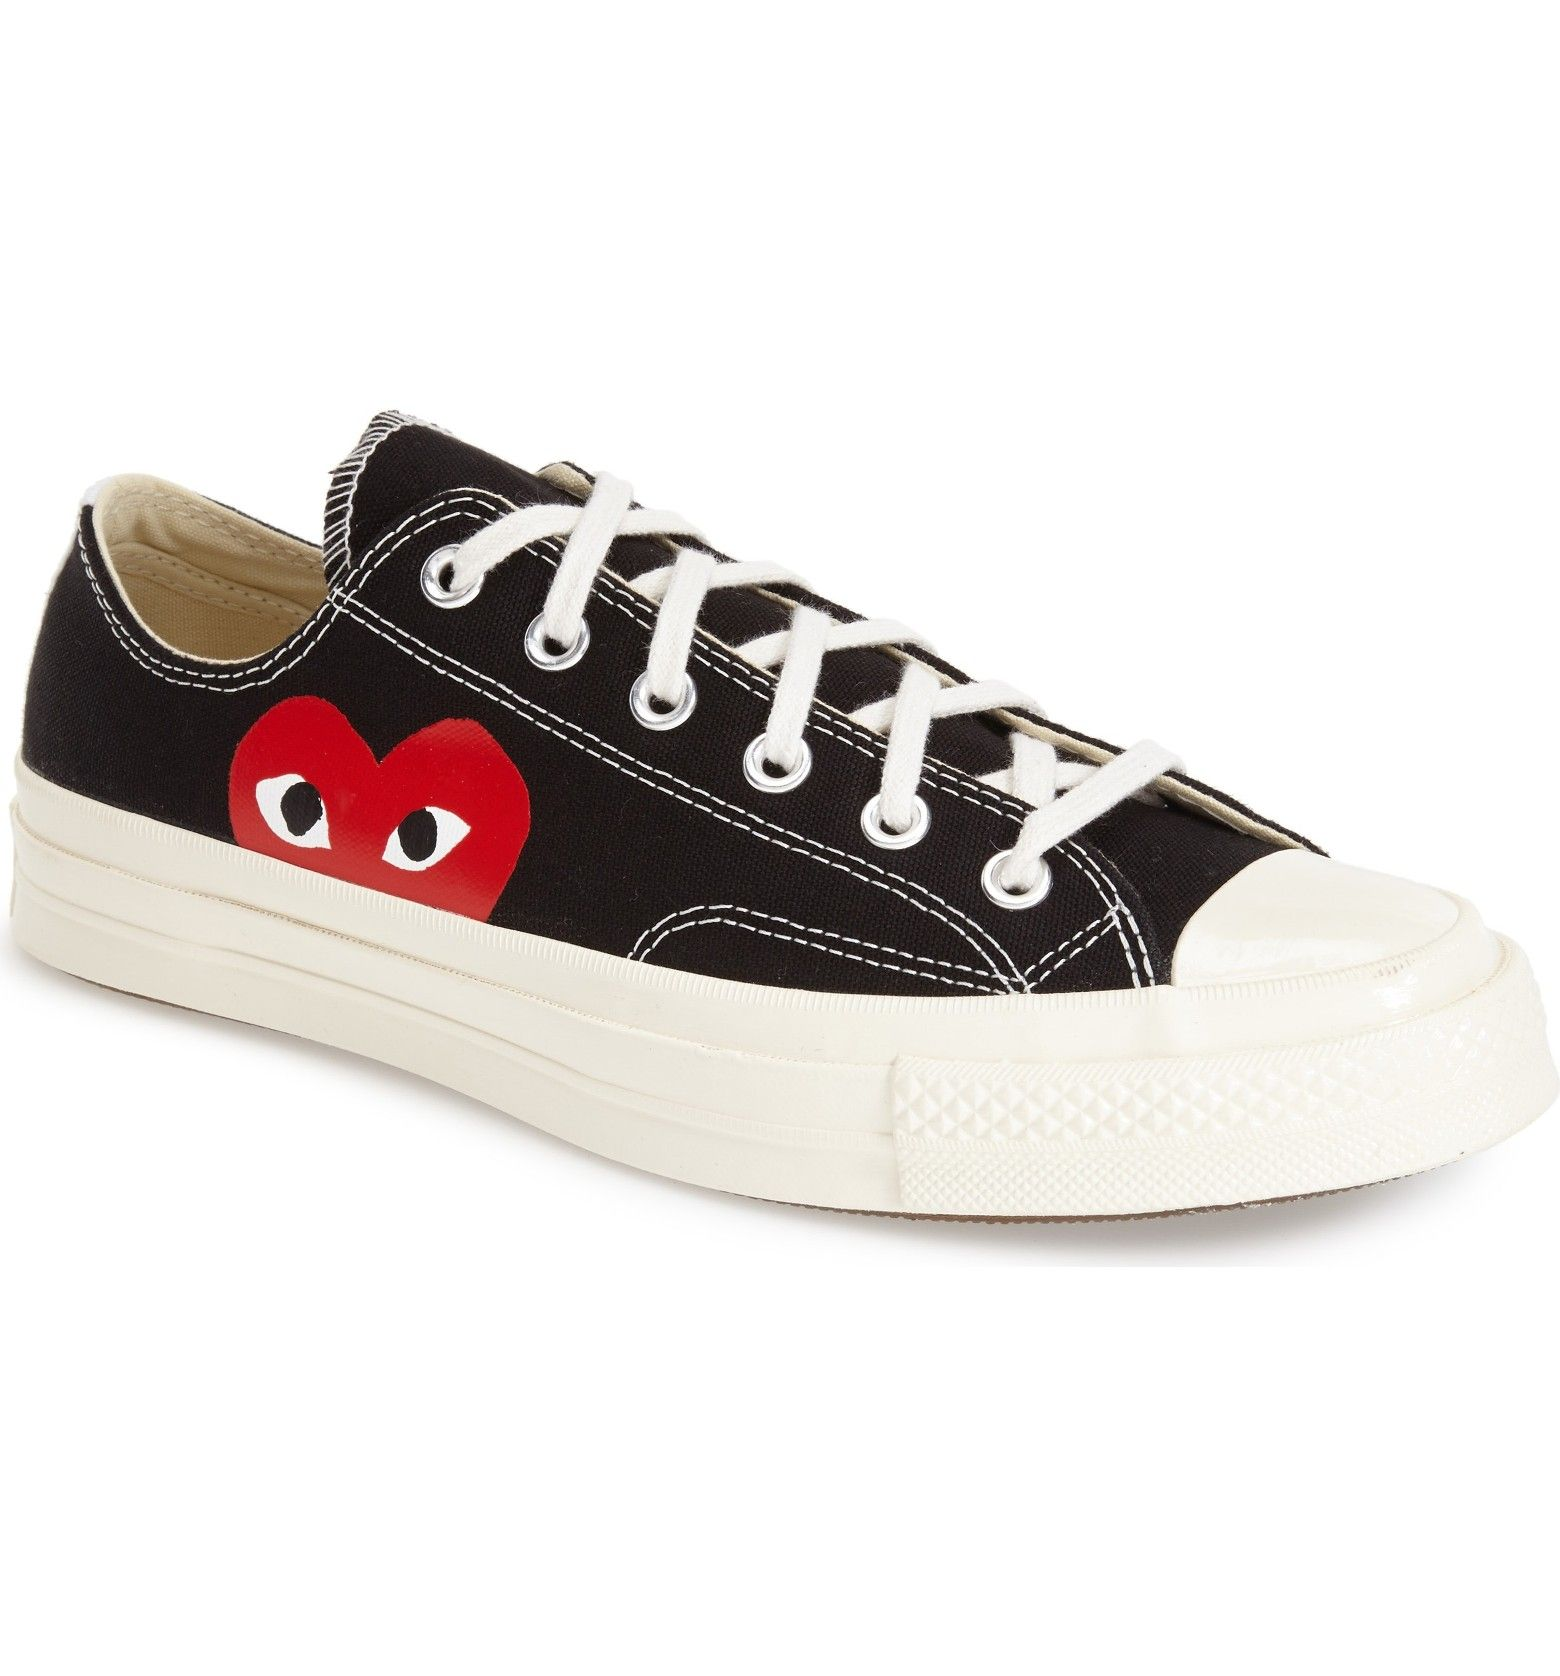 ddf5102b88c0 Comme des Garçons PLAY x Converse Chuck Taylor - Hidden Heart Low Top  Sneaker in black (Women)